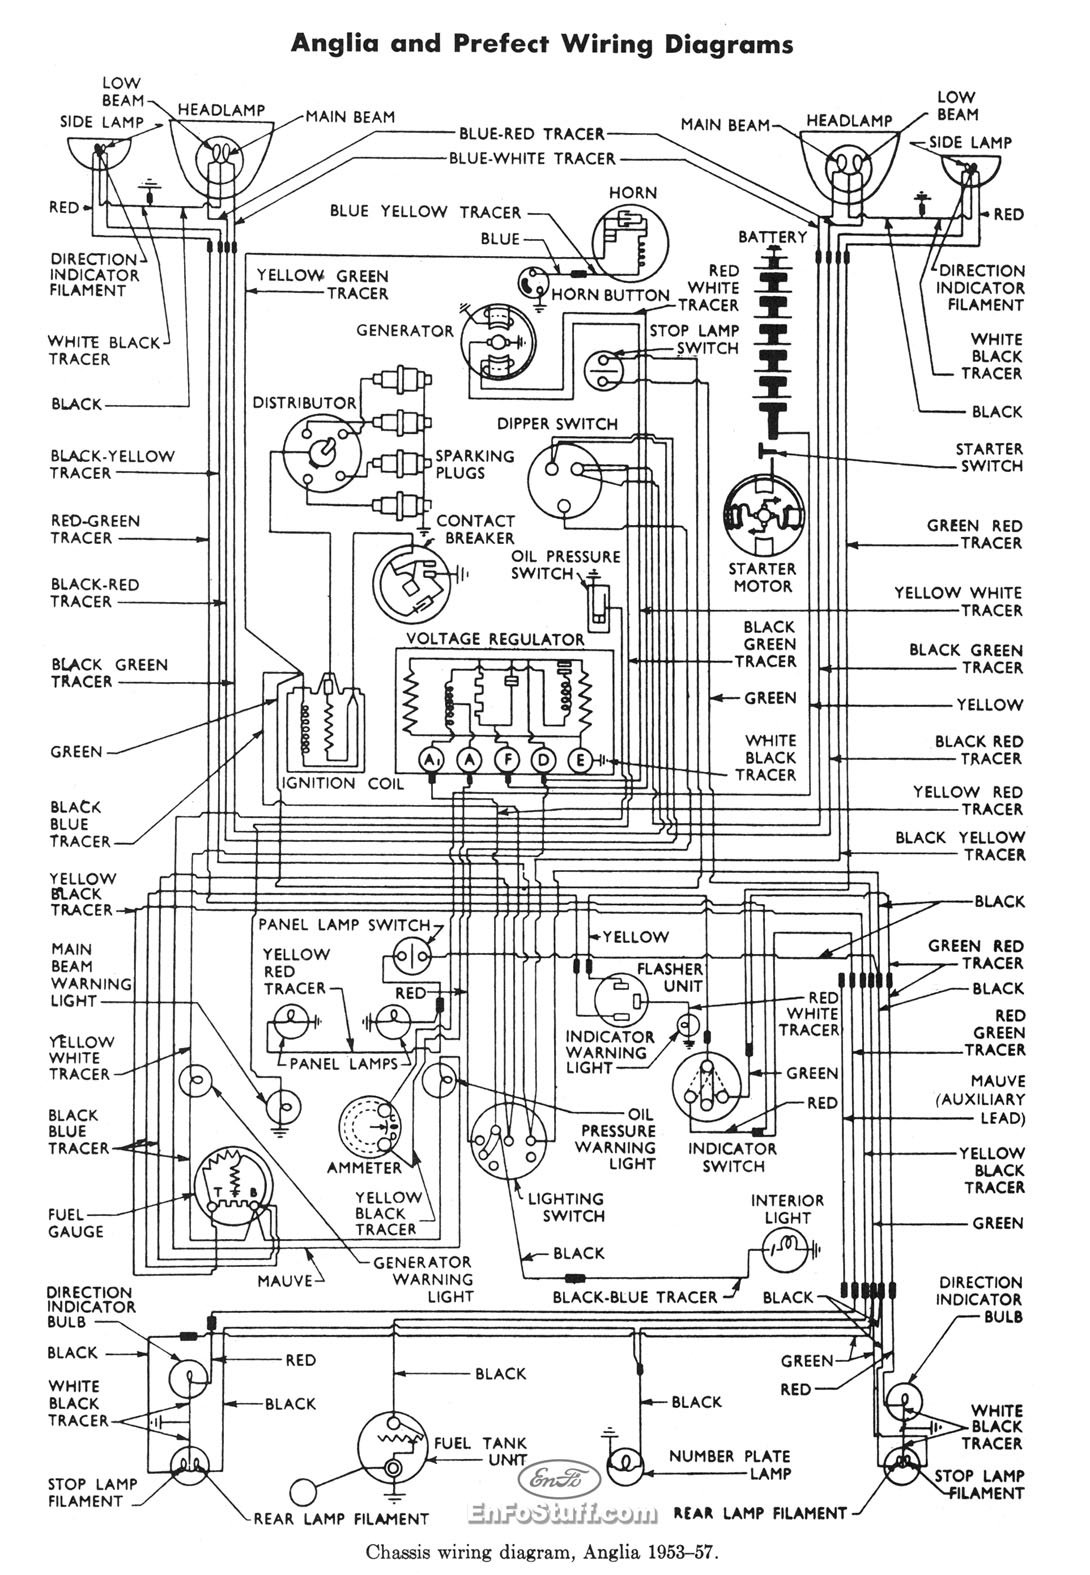 ford anglia 1953 57 wiring diagram wiring diagram for ford anglia 1953 57 ford 3000 electrical wiring diagram at honlapkeszites.co